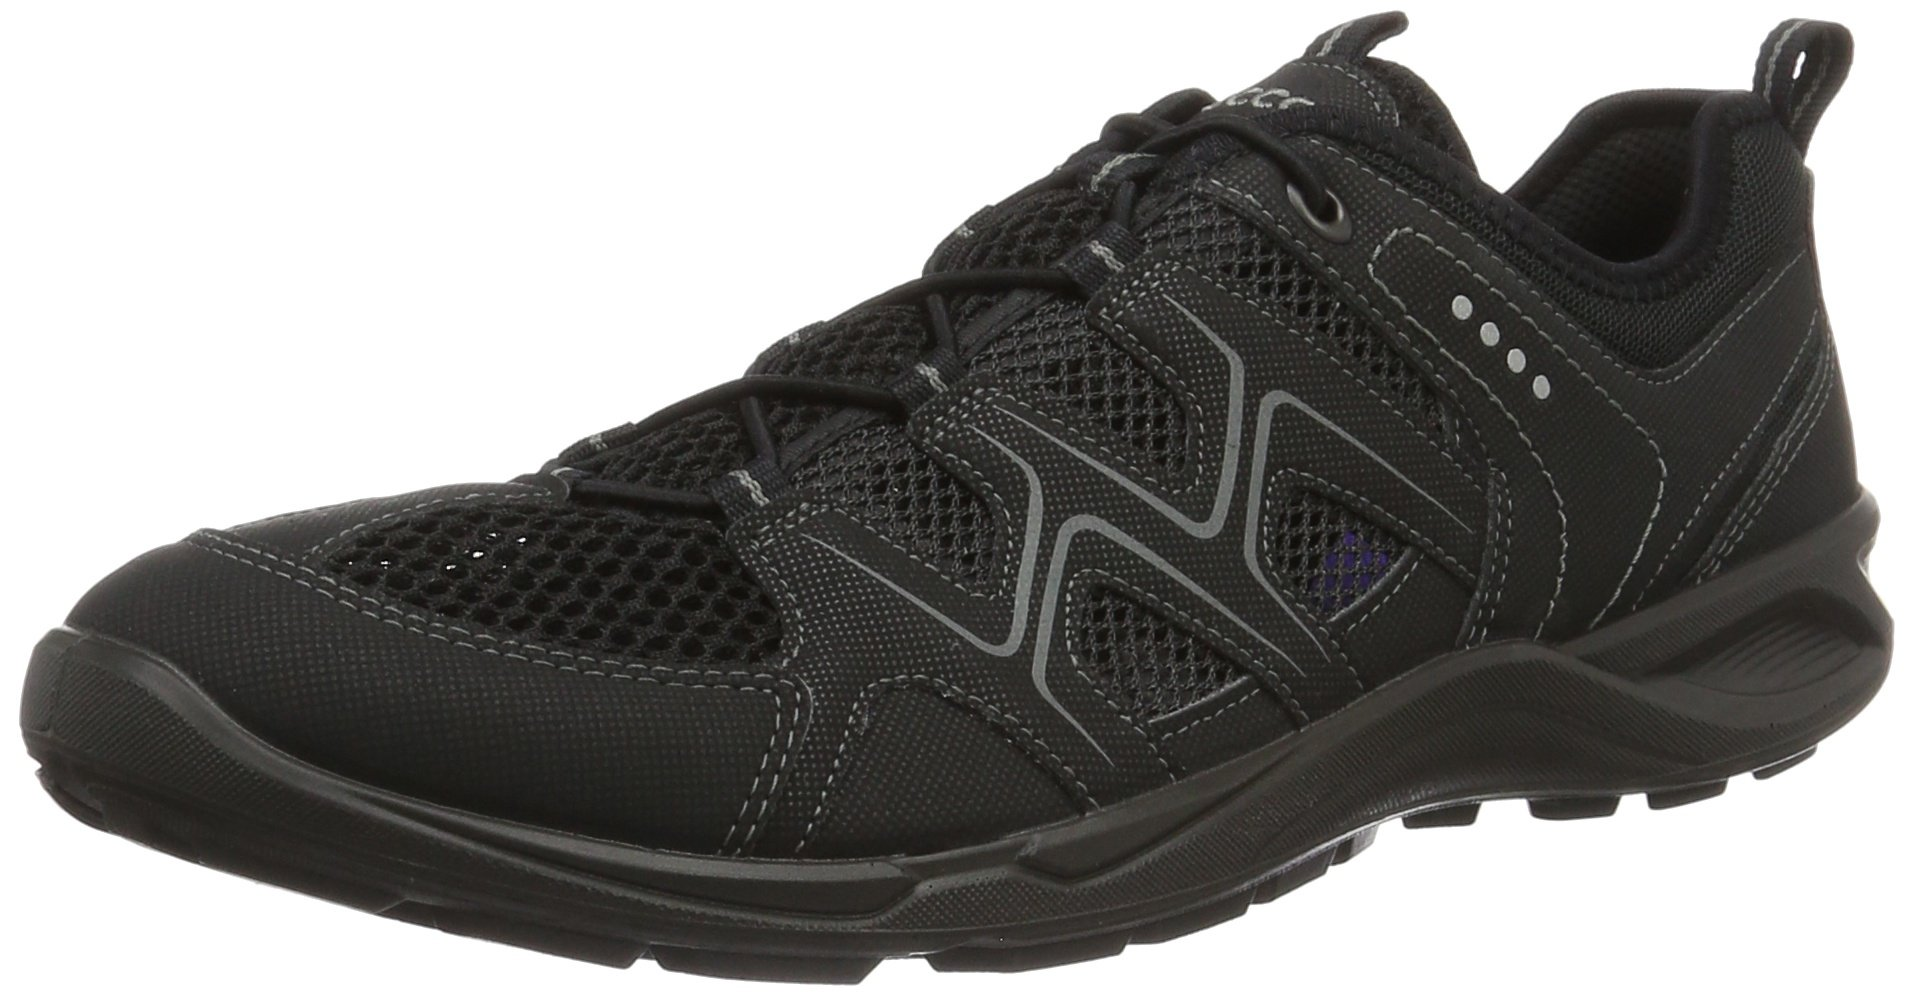 ECCO Women's Terracruise Hiking Shoe, Black, 39 M EU (8-8.5 US)